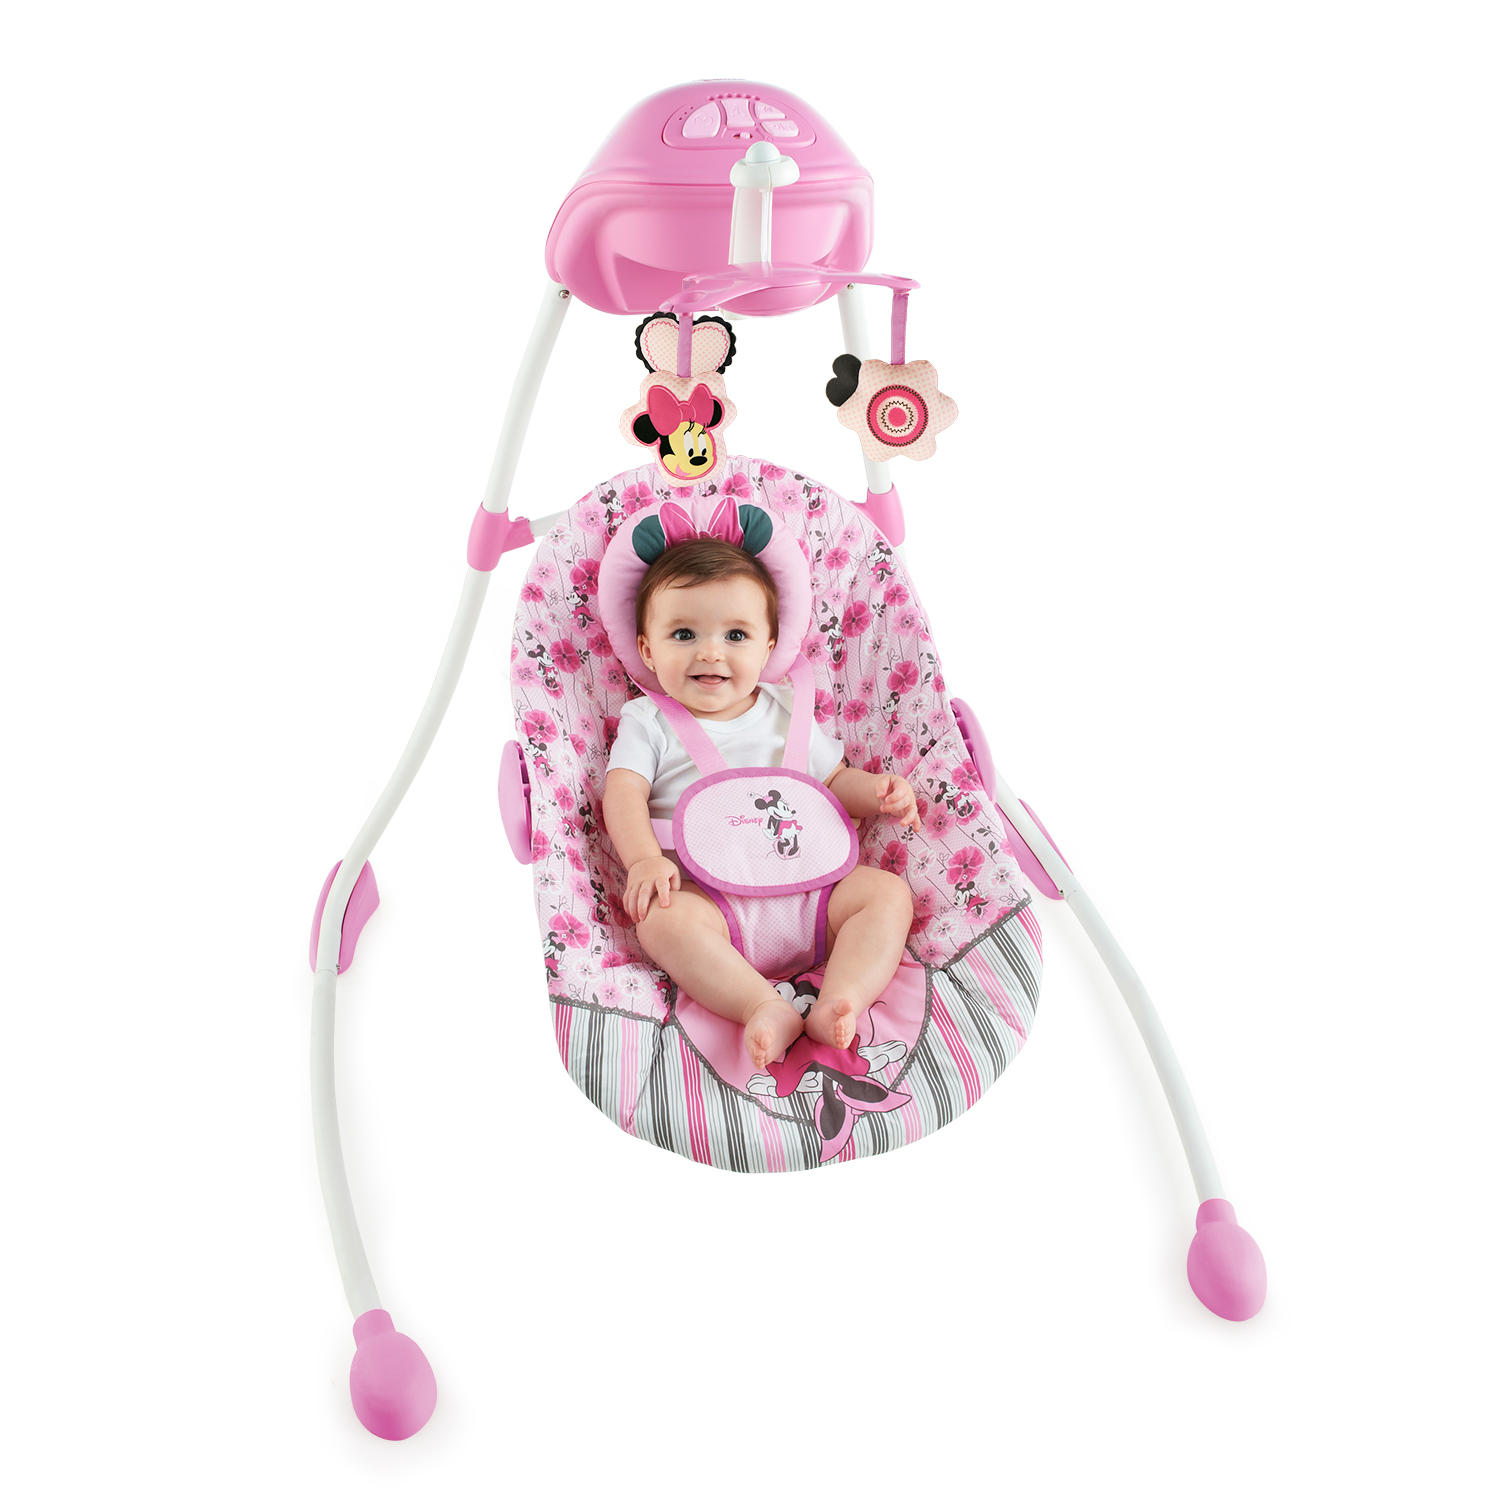 MINNIE MOUSE Precious Petals Swing